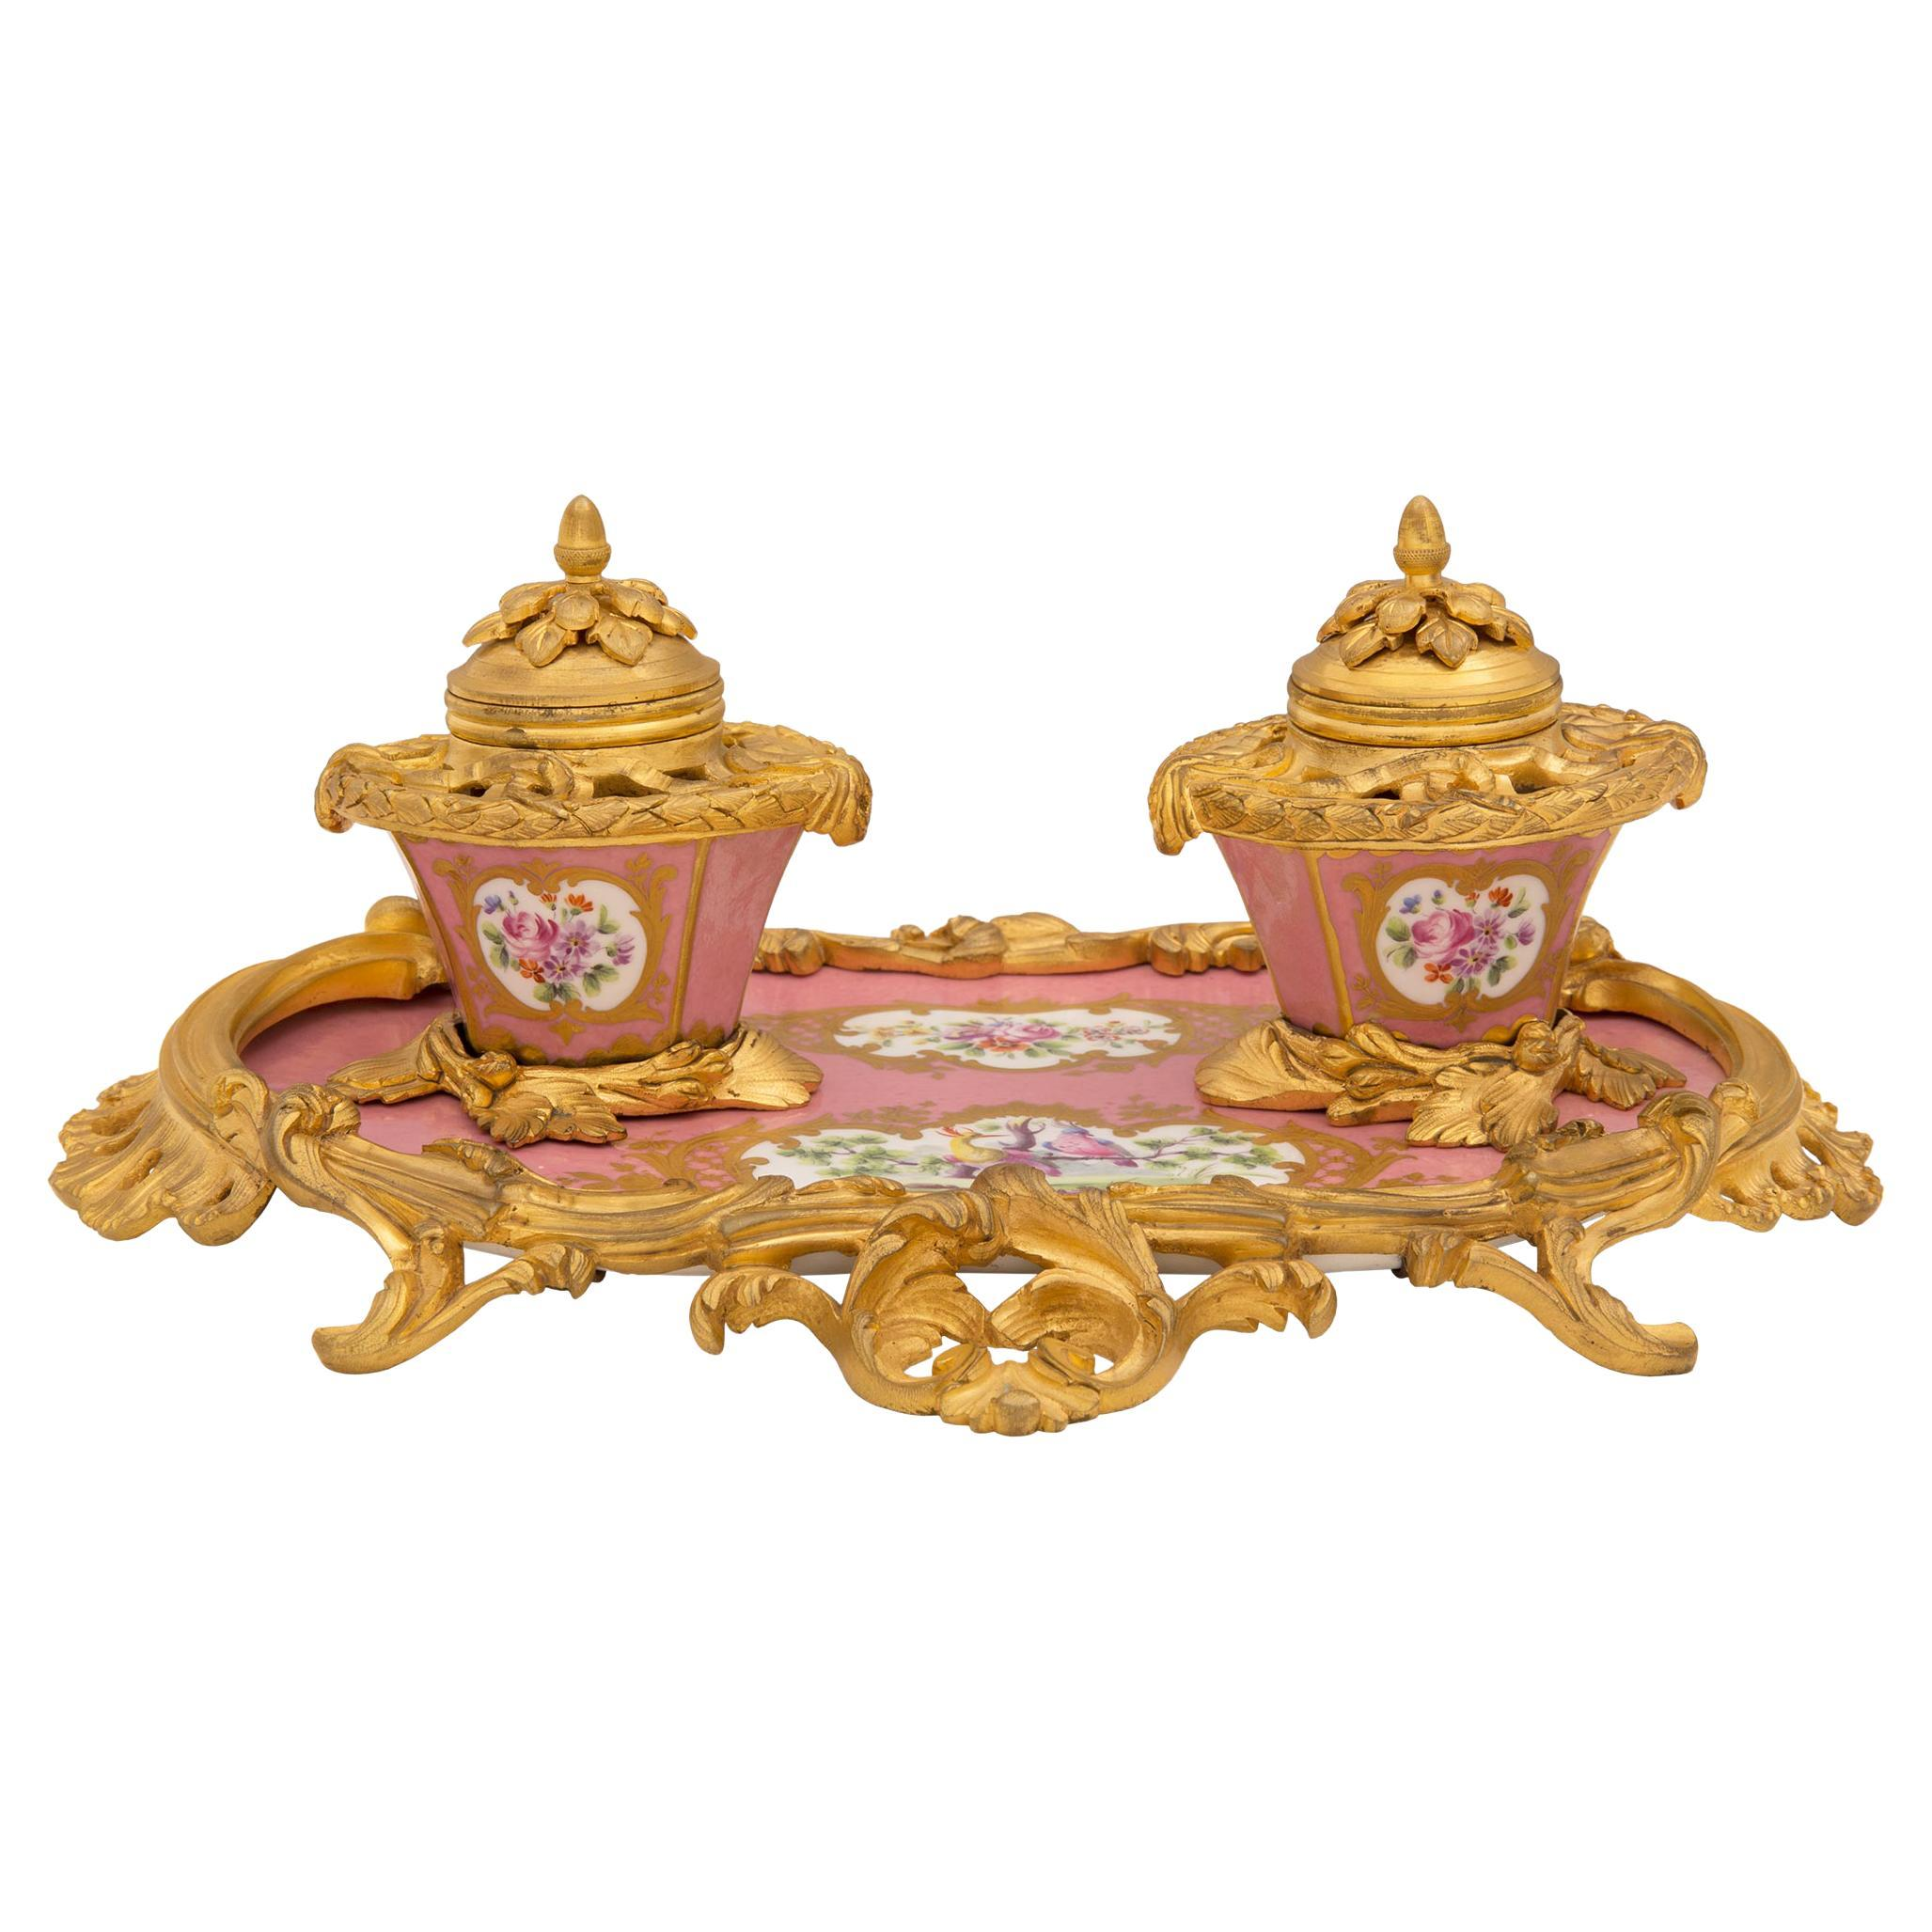 French Early 19th Century Louis XV St. Sèvres Porcelain and Ormolu Inkwell, Sign